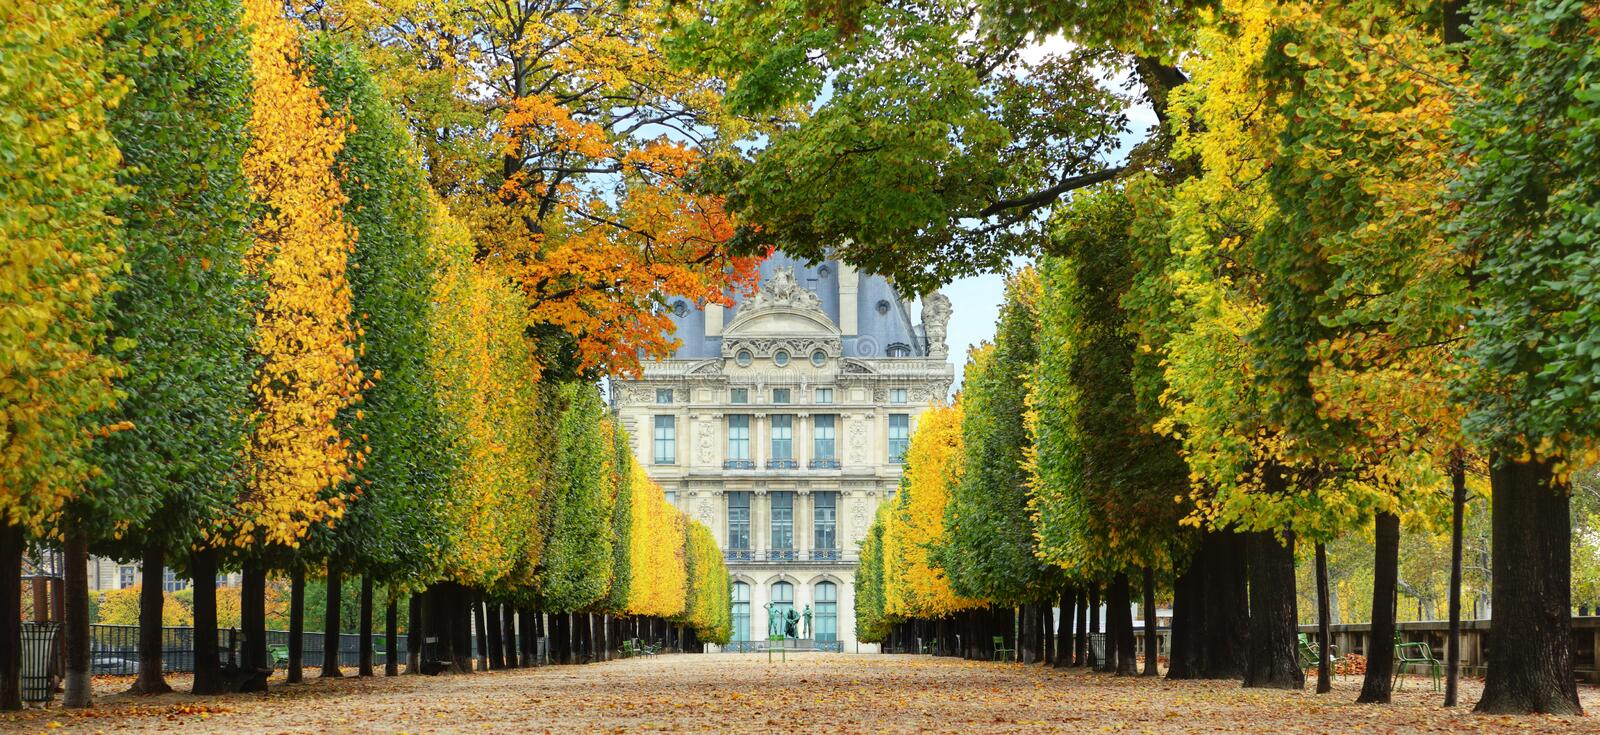 Autumn in Paris. Avenue of trees in autumn leading to the Musee du Louvre in Paris France royalty free stock image